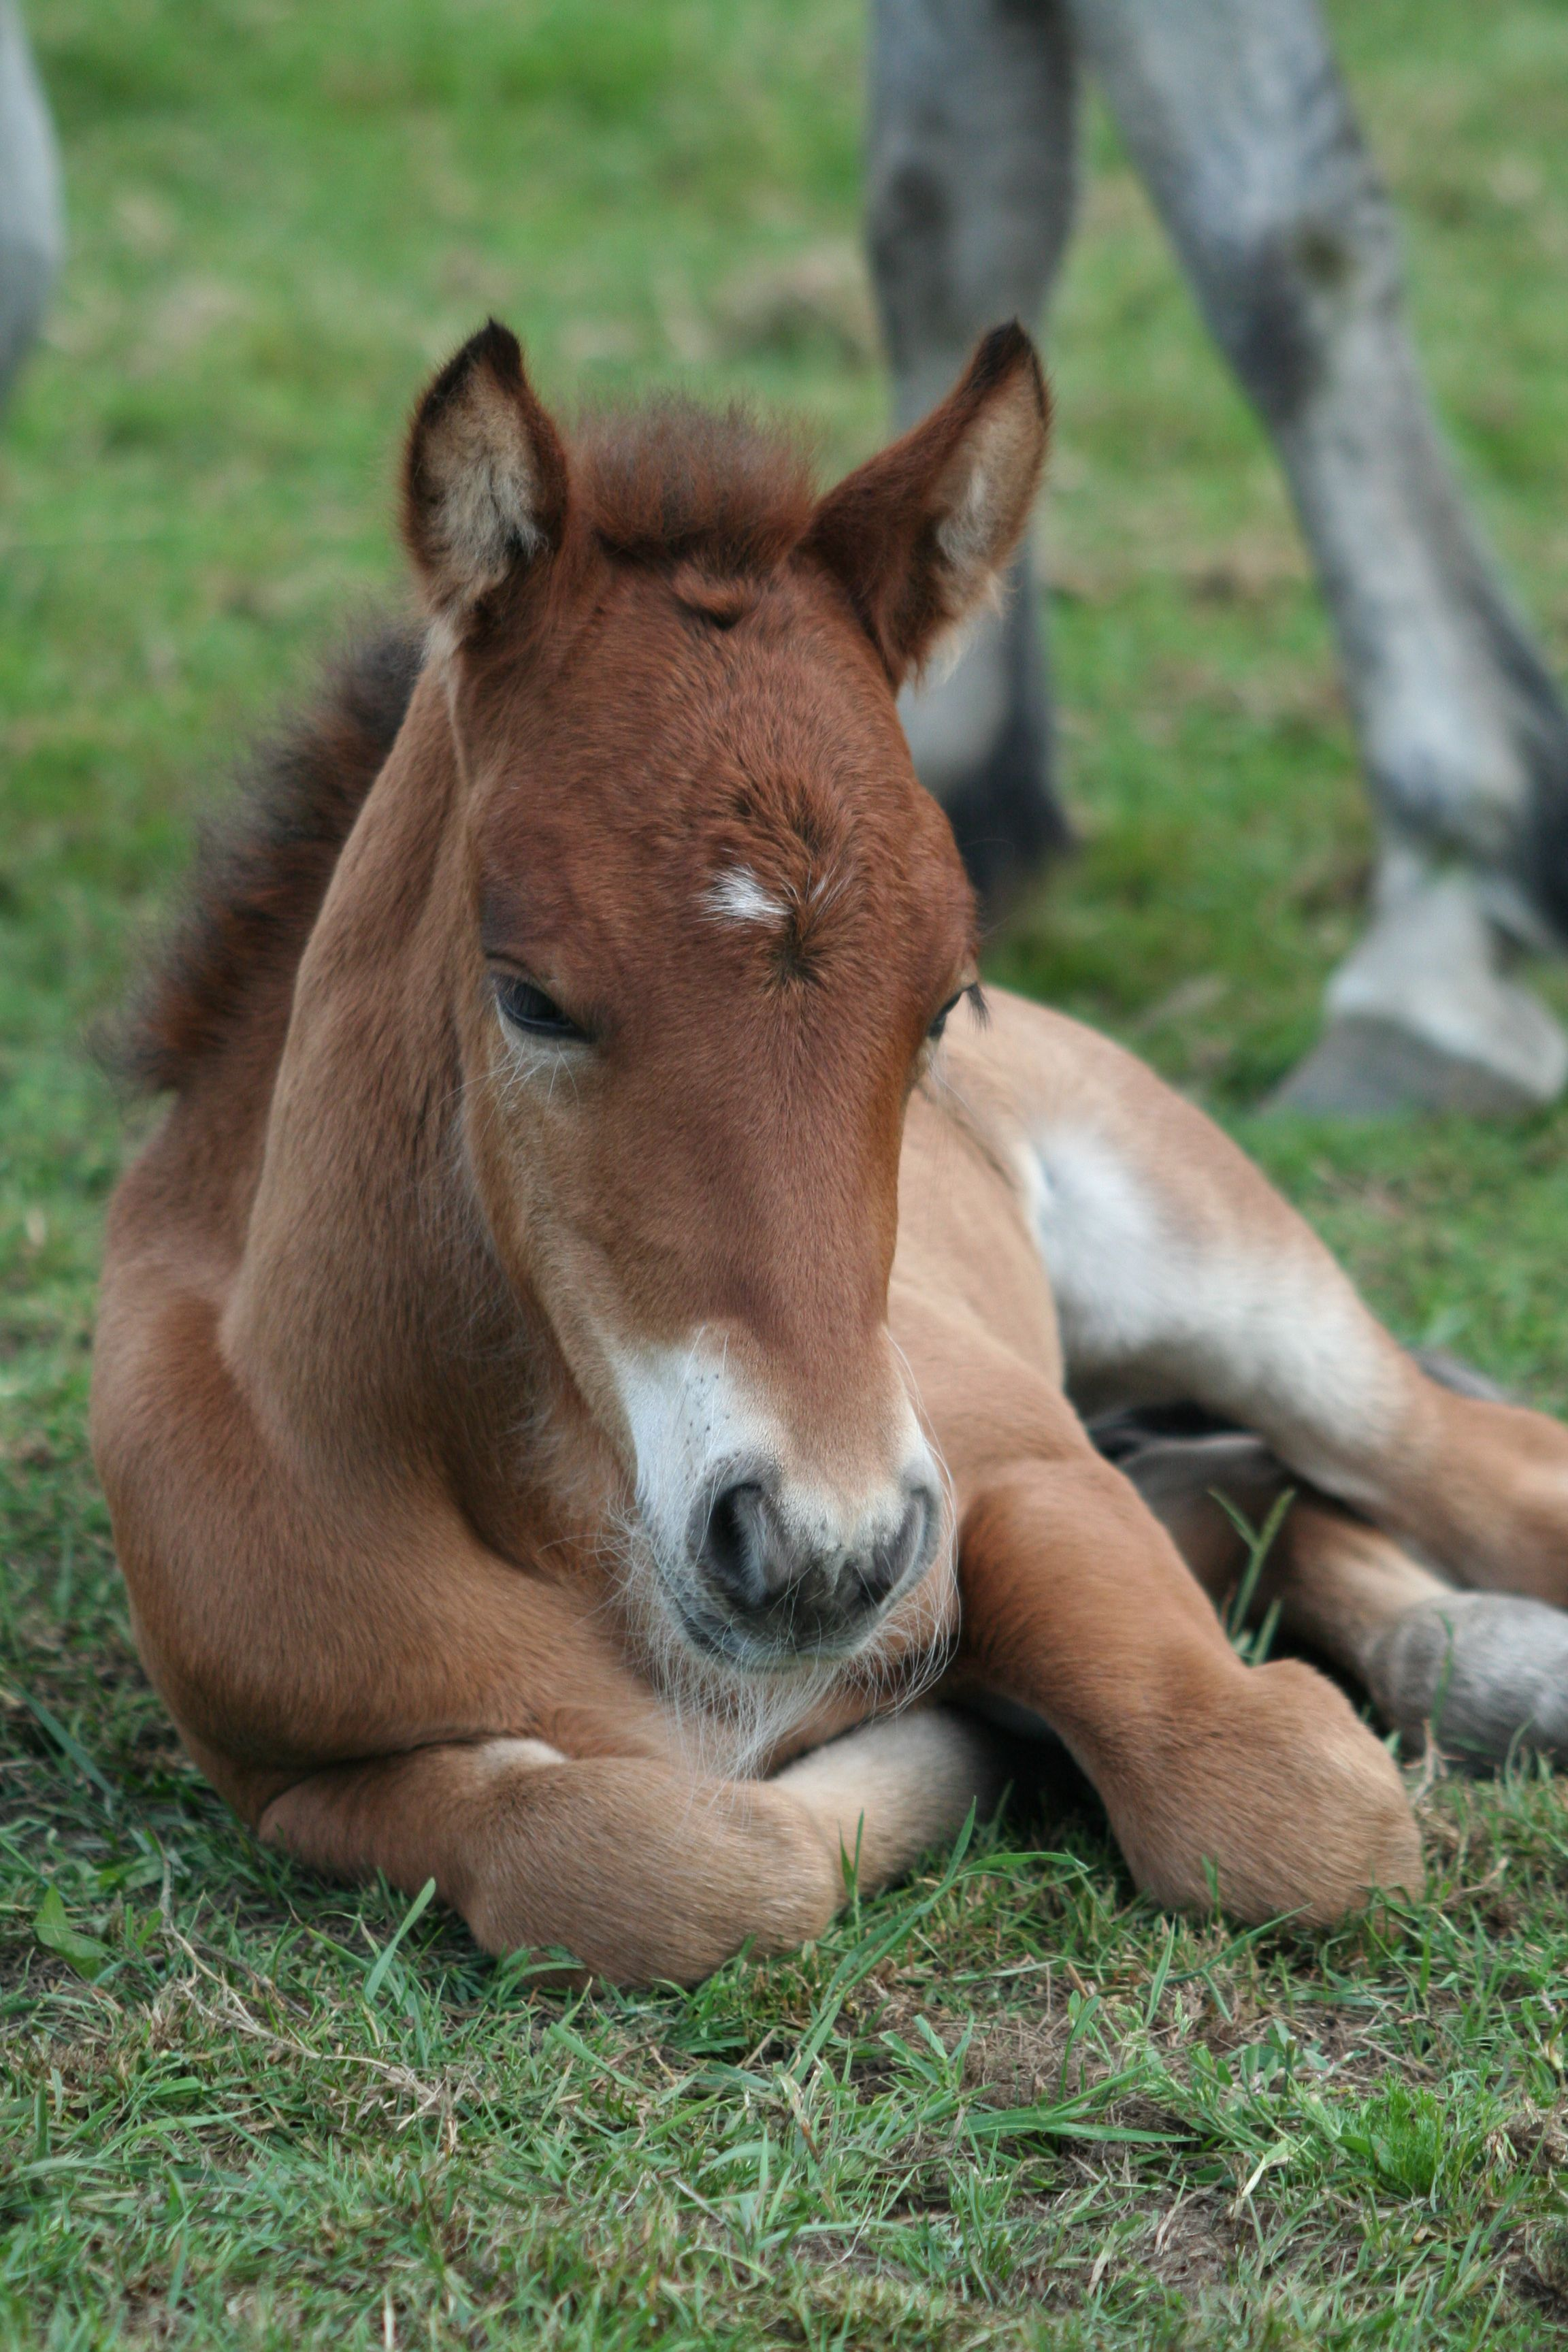 Cute Baby Animal Day Cute baby horses, Baby horses, Baby